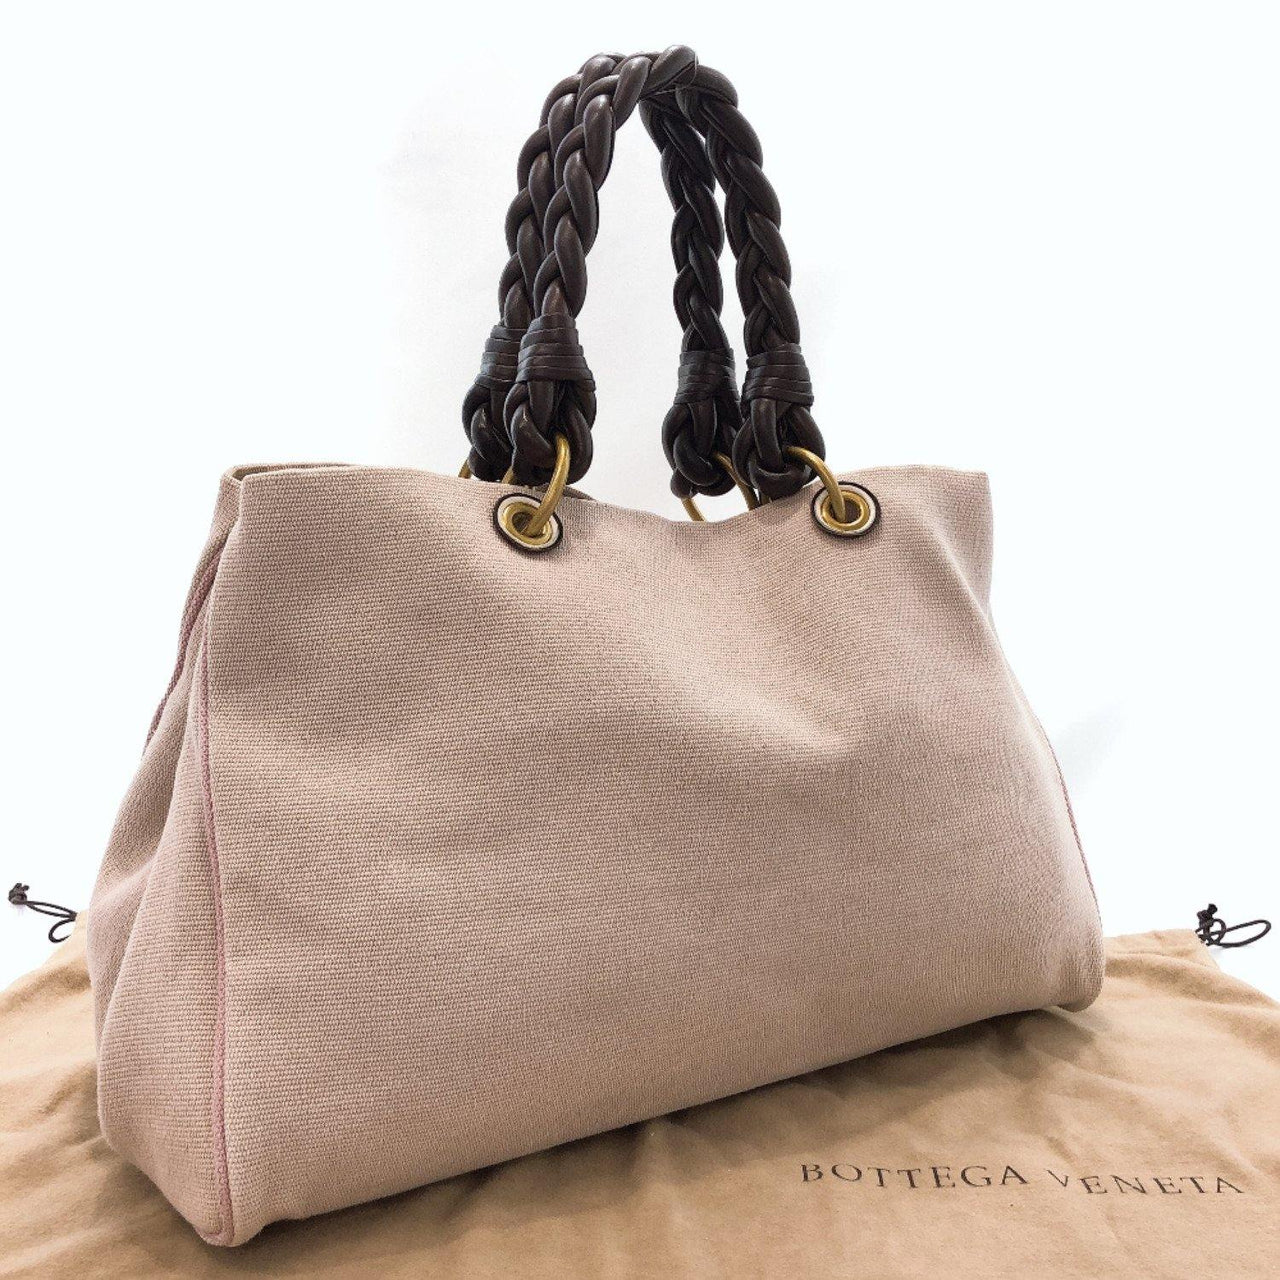 BOTTEGAVENETA Tote Bag canvas pink beige Women Used